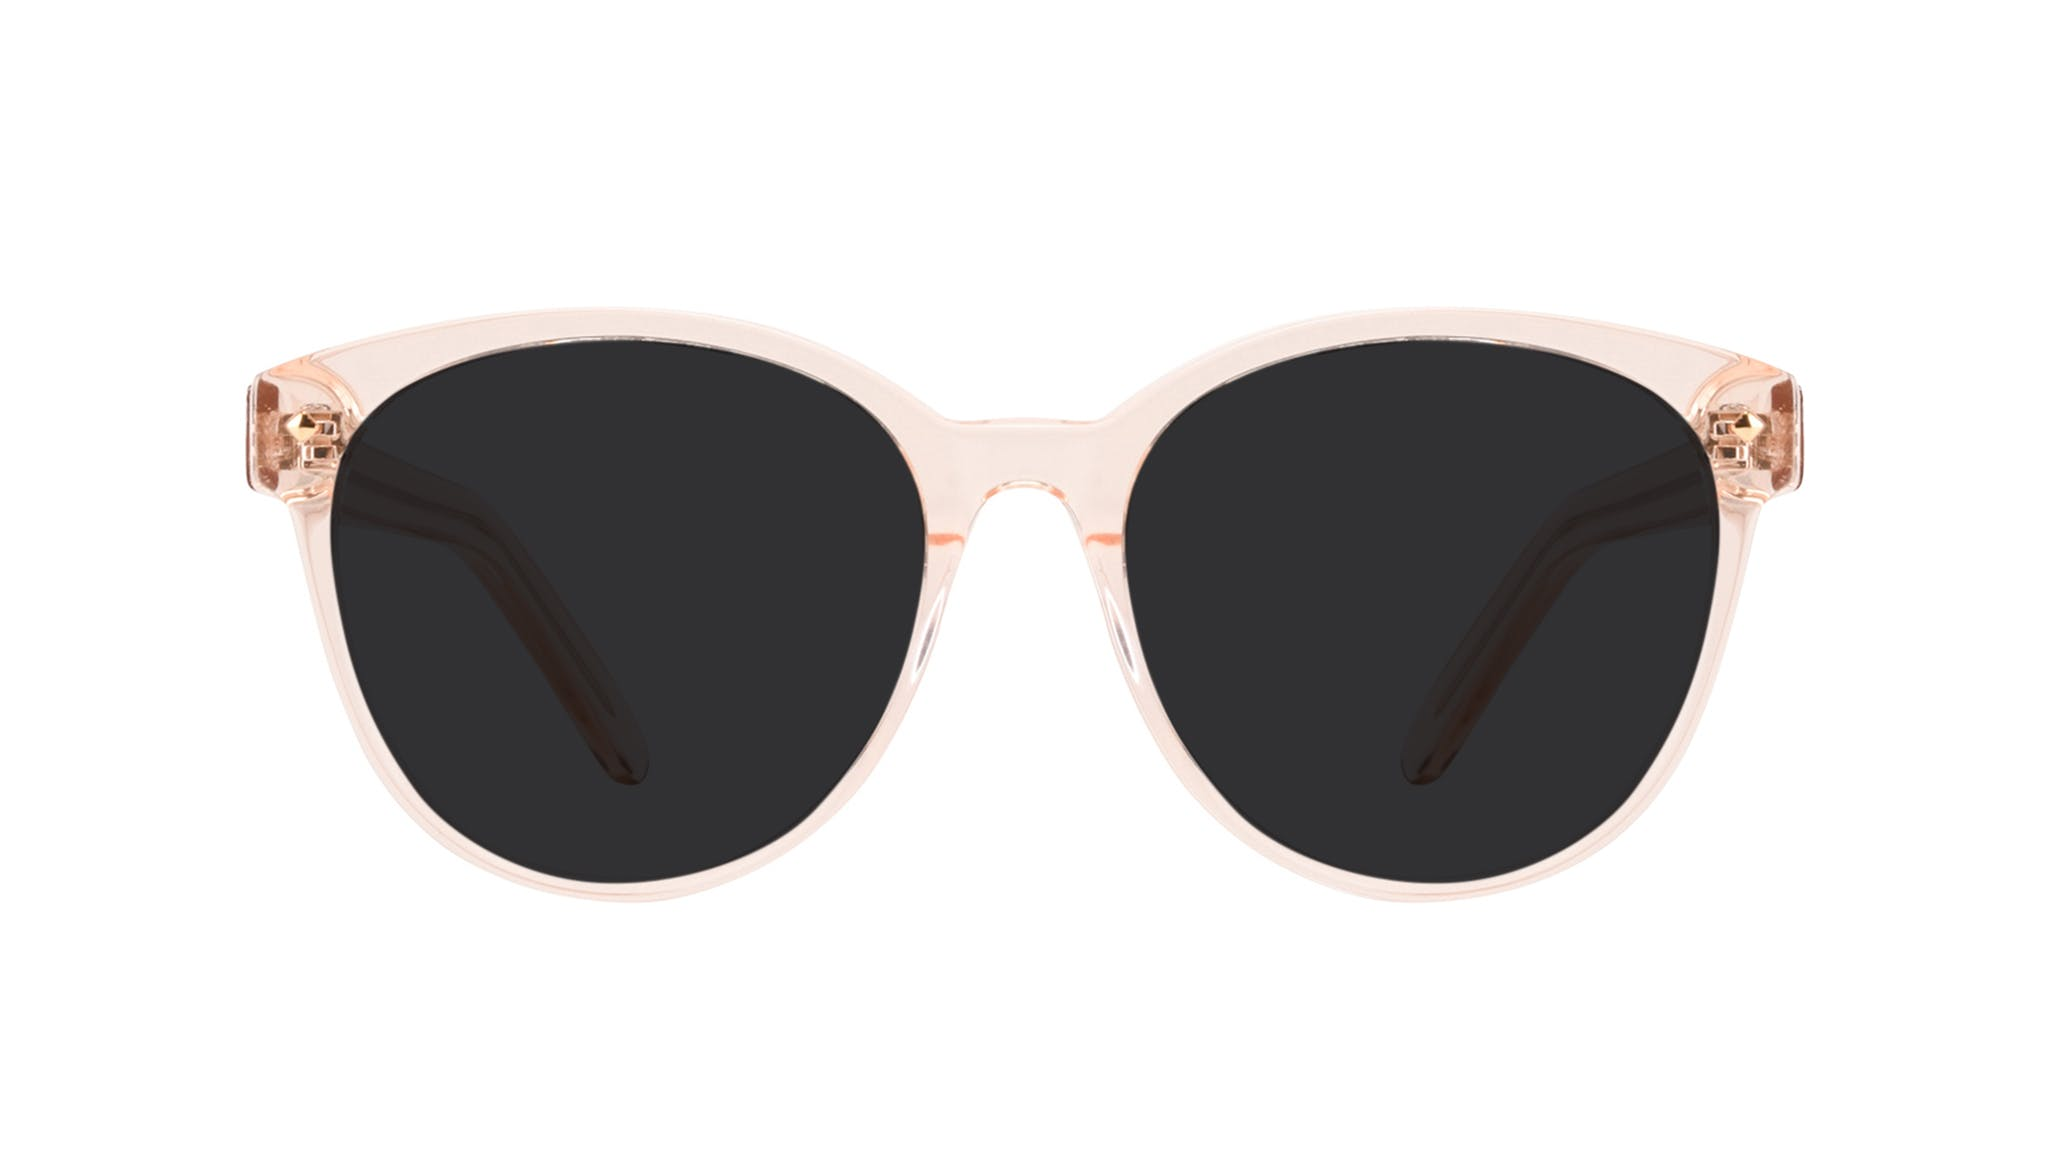 Affordable Fashion Glasses Round Sunglasses Women Eclipse Blond Front